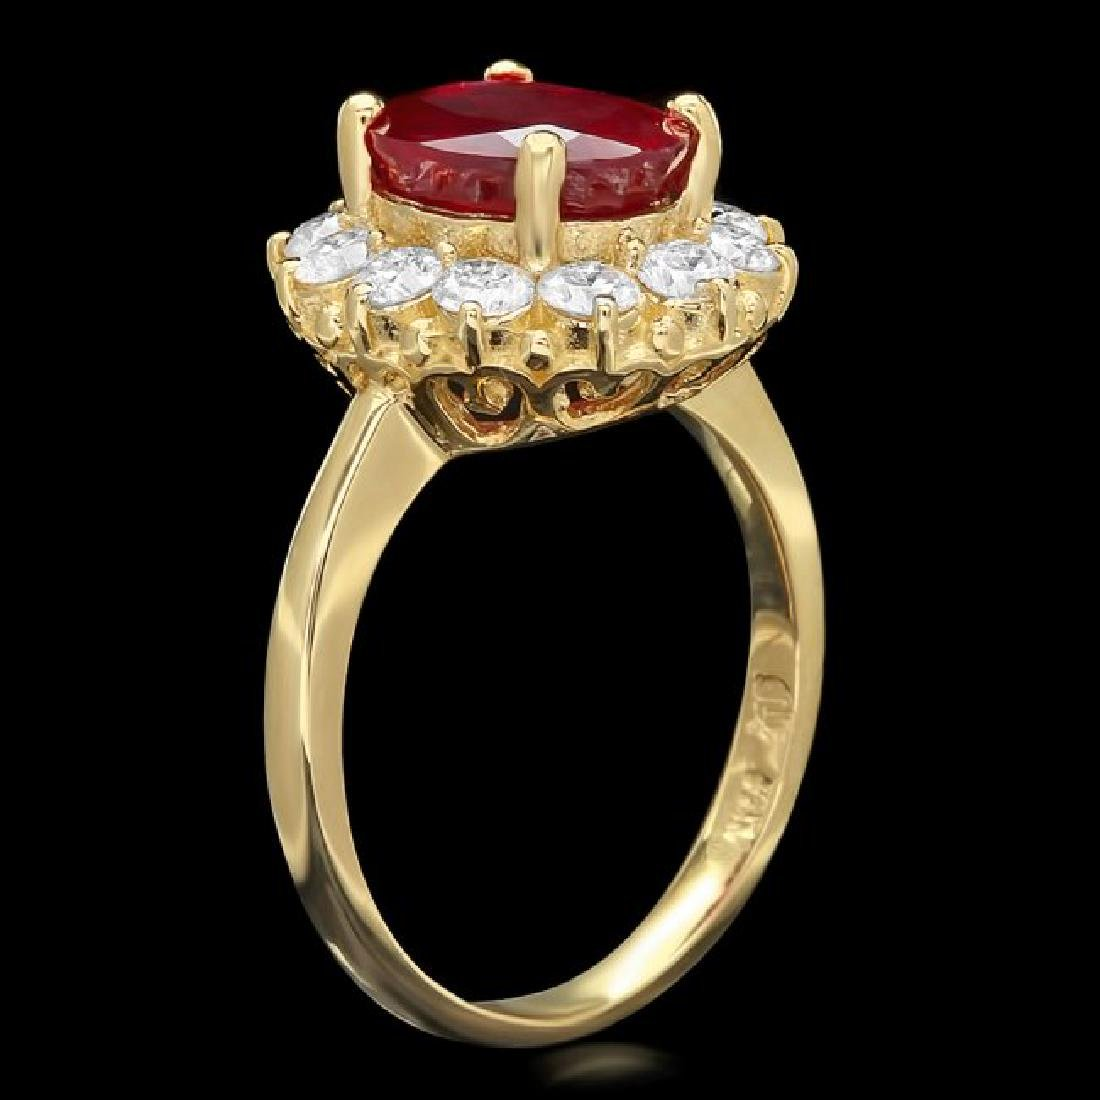 14k Yellow Gold 3.61ct Ruby 1.05ct Diamond Ring - 2